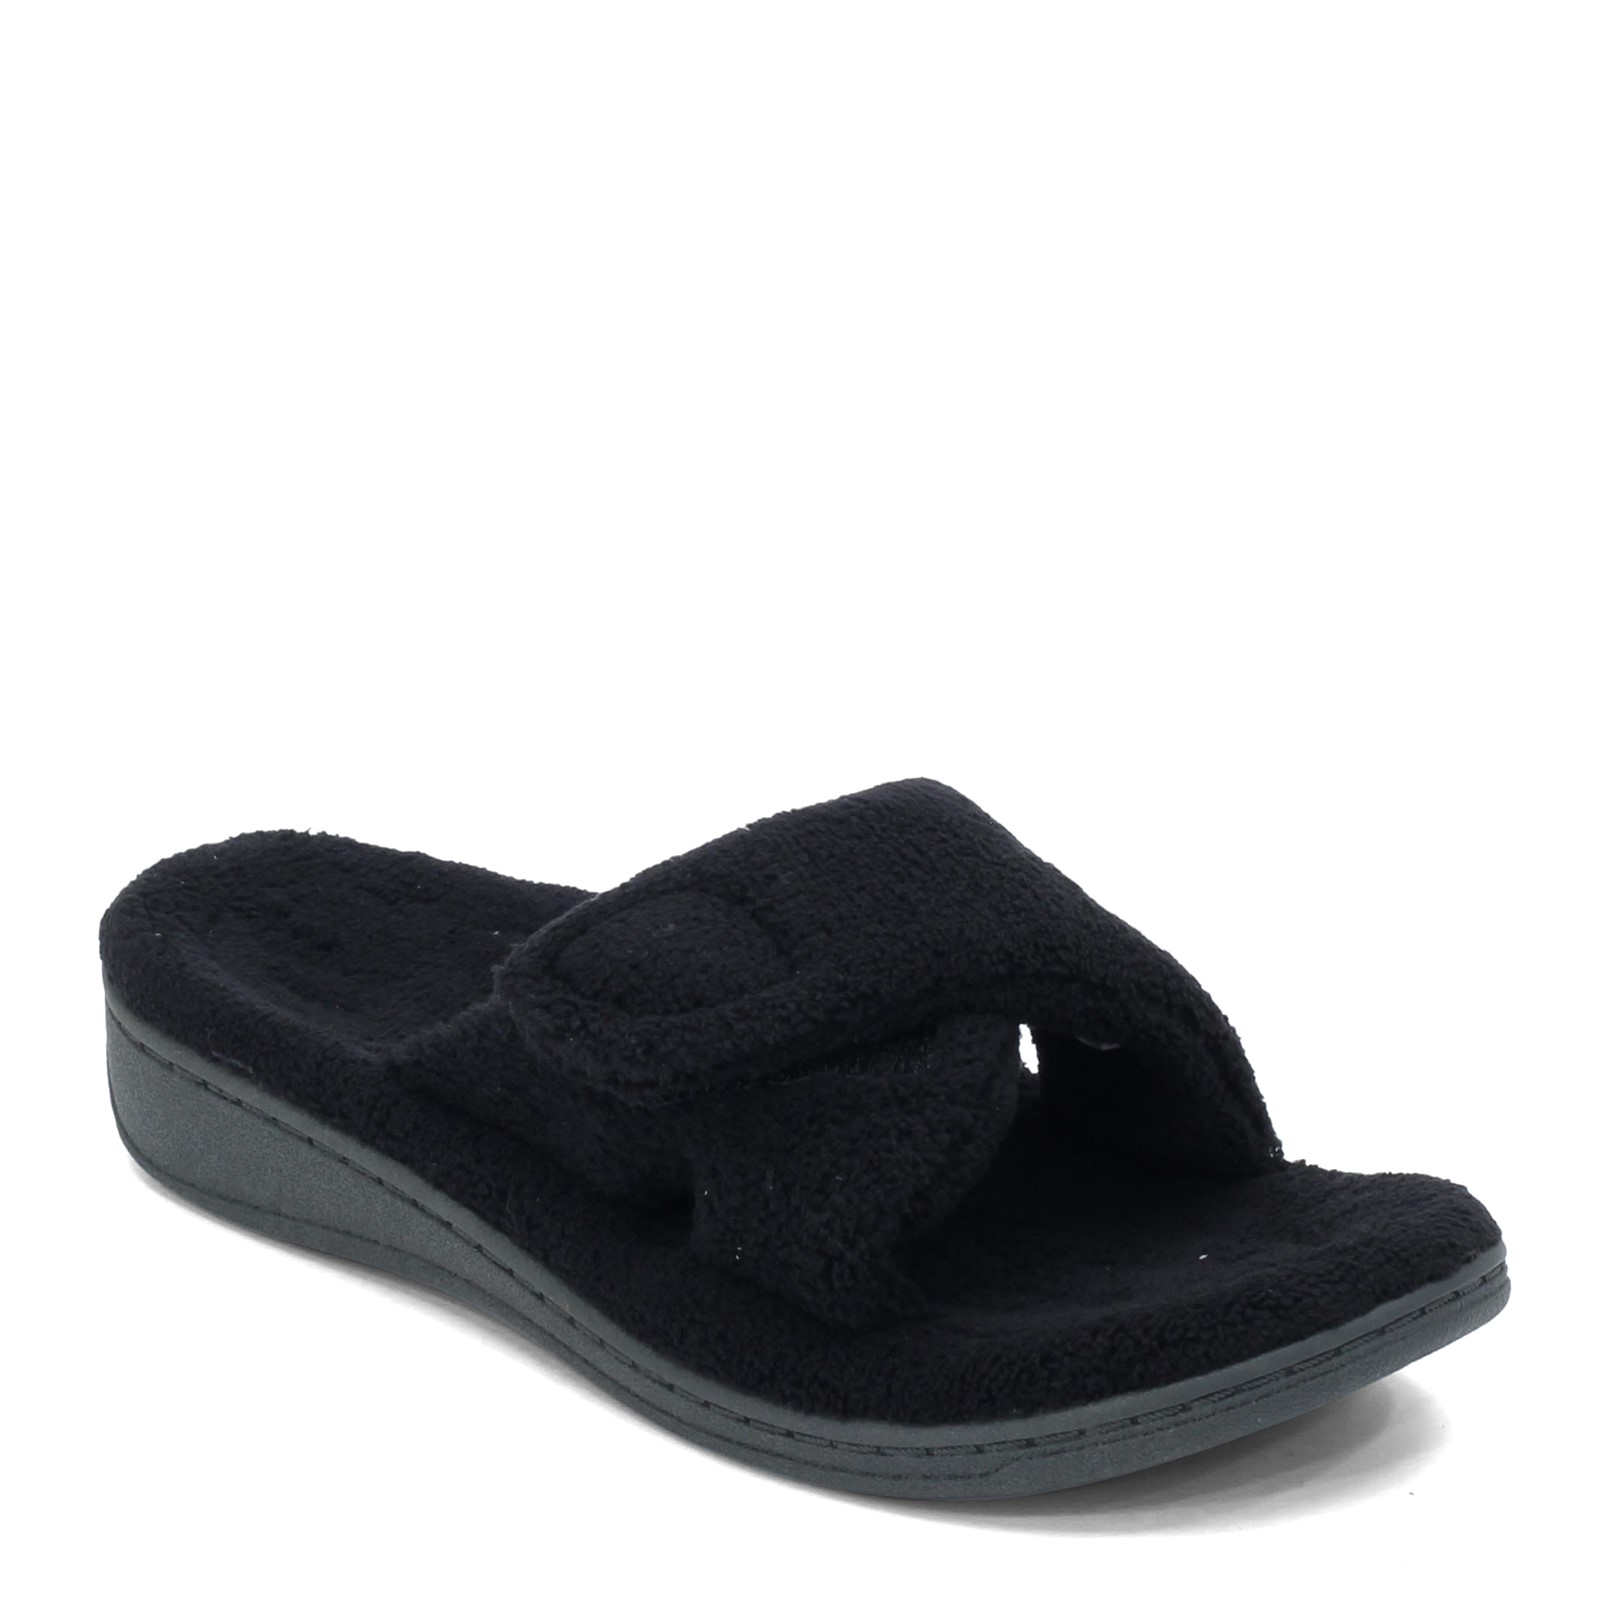 Women's Orthaheel, Relax Slipper